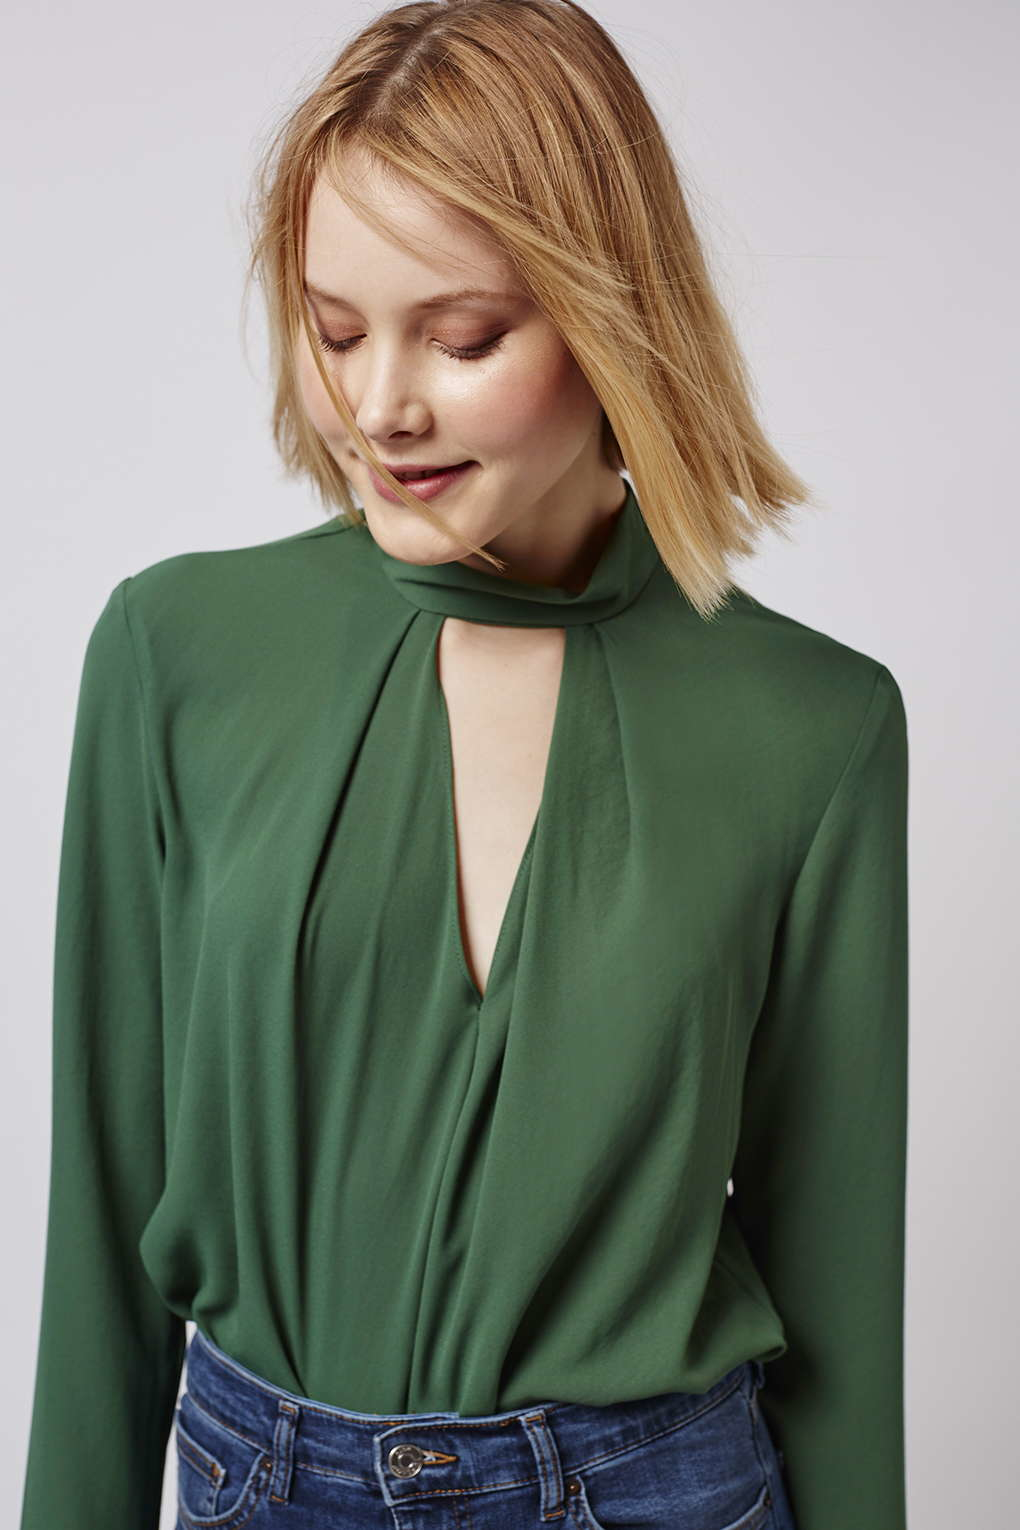 depths drapes neck ann tops lyst gallery in taylor normal product top crepe blue drape clothing petite